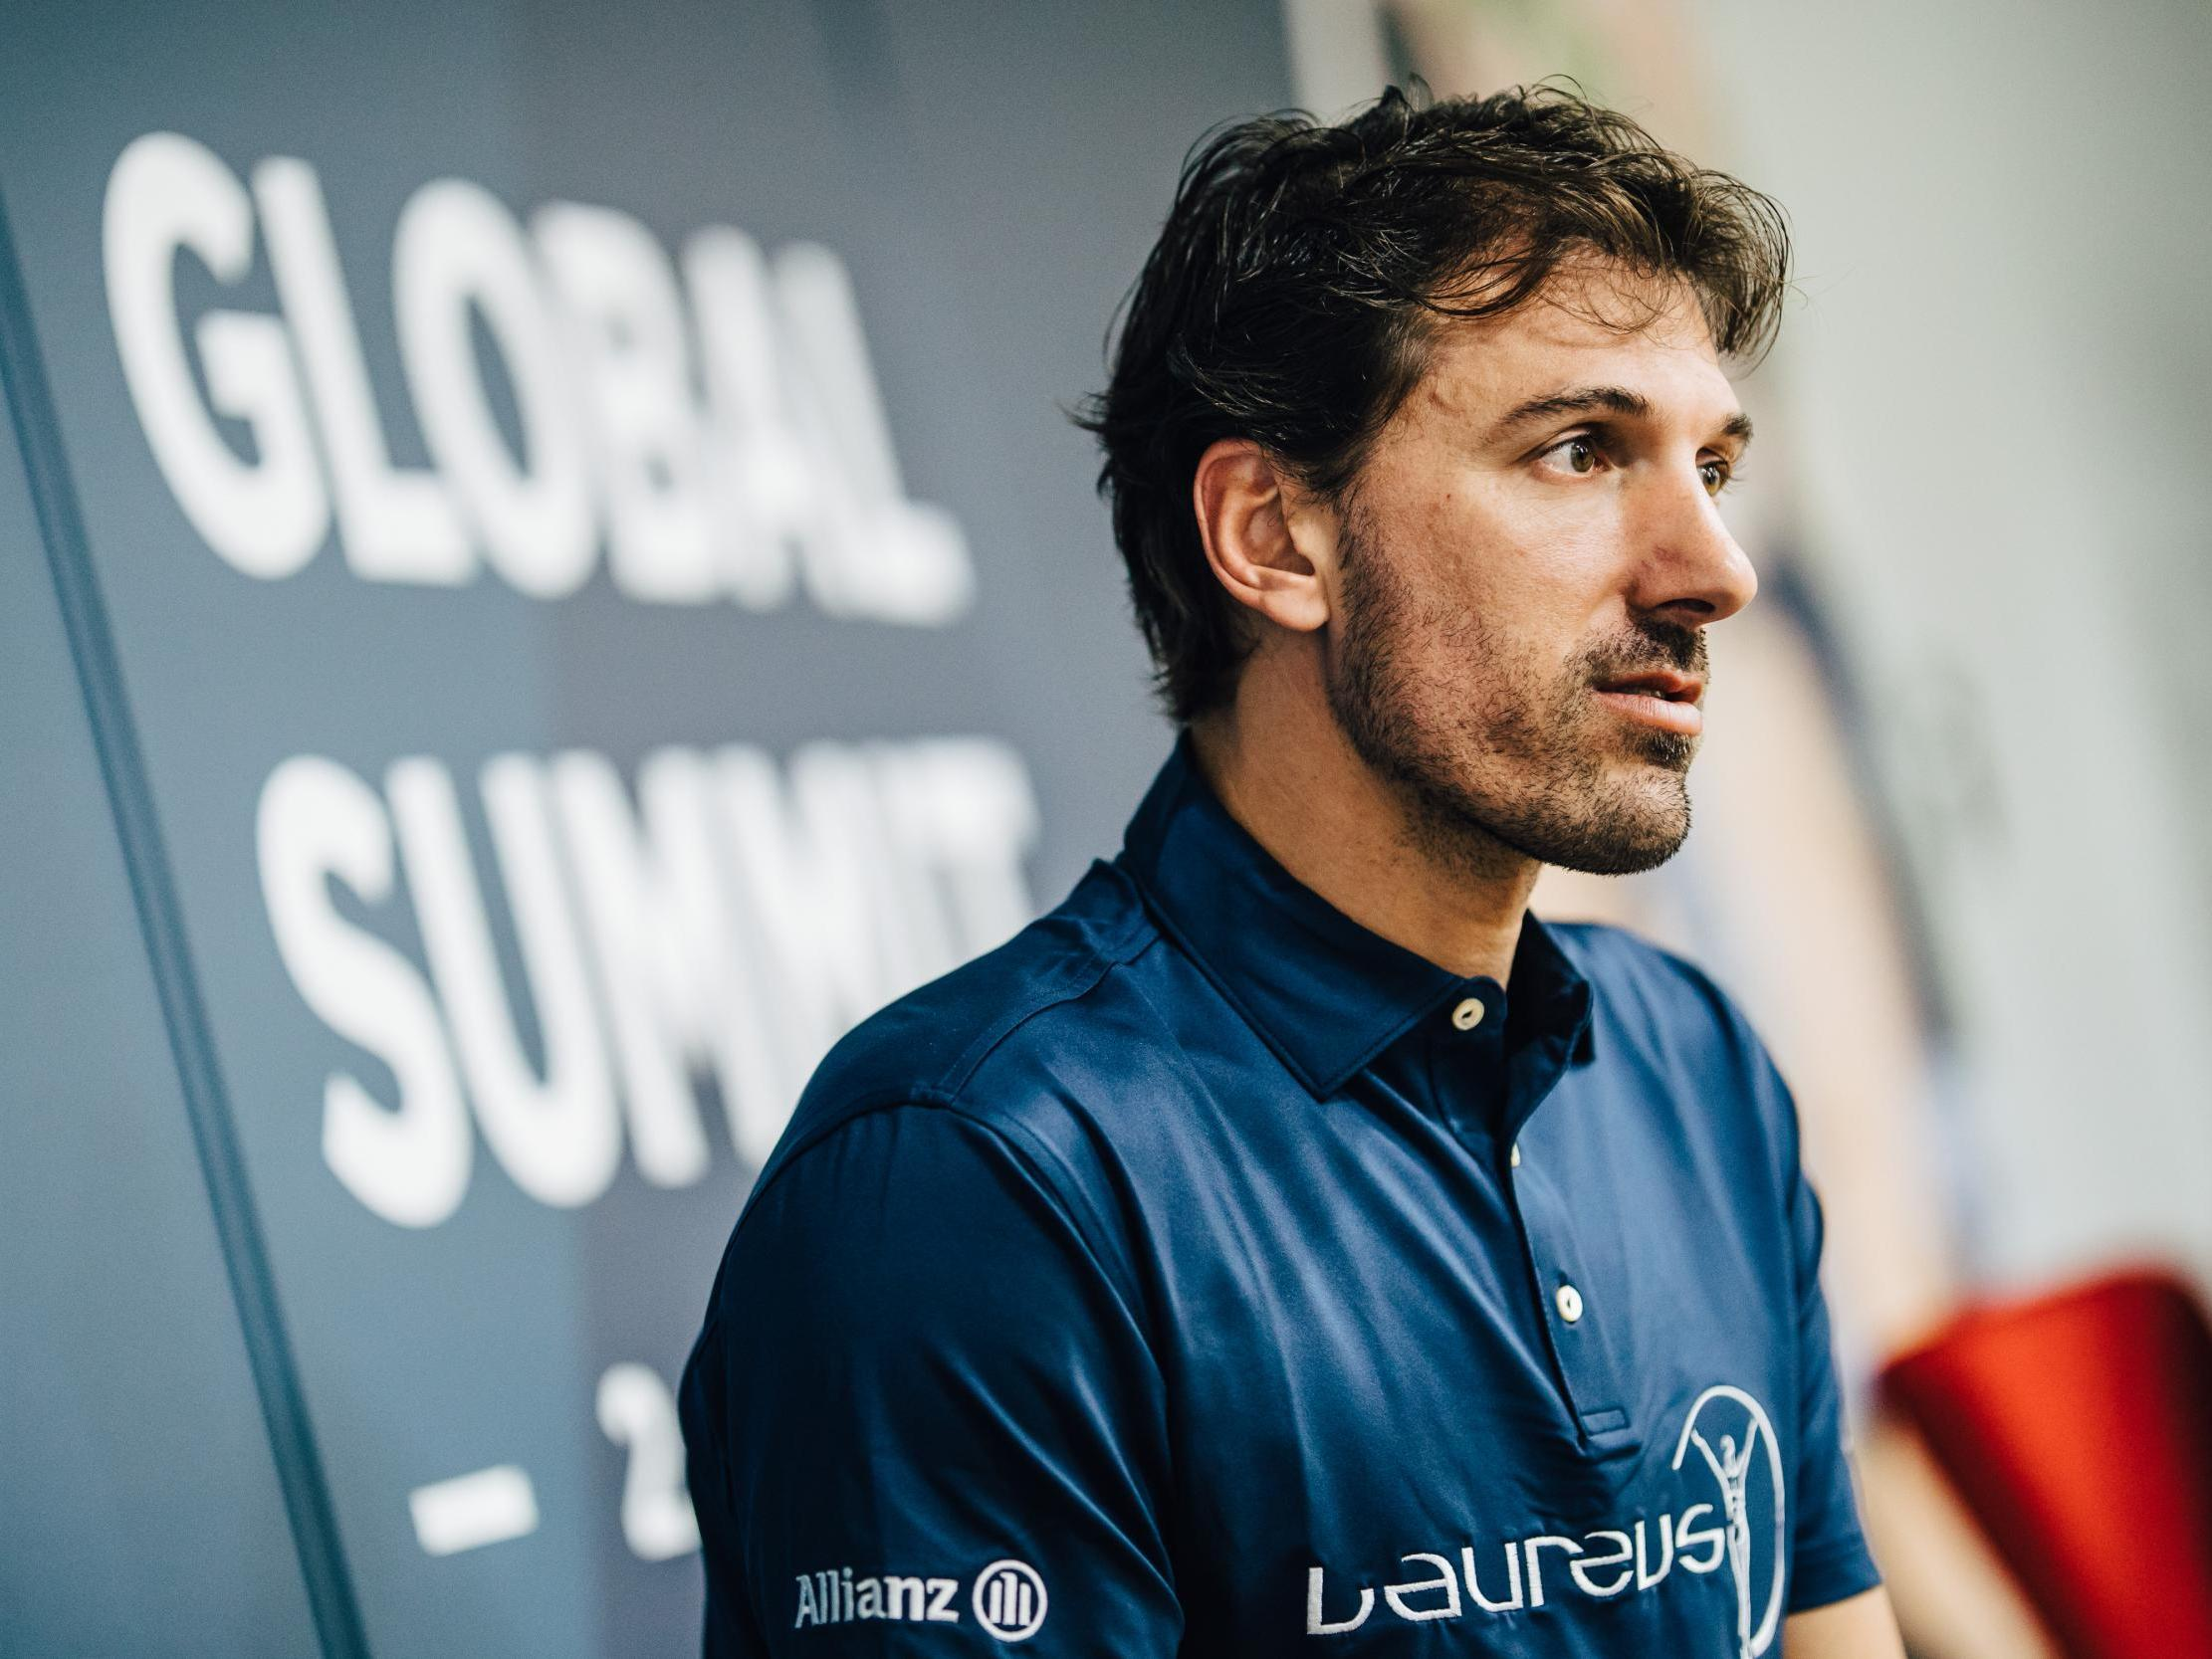 Fabian Cancellara interview: 'Racing is business, but cycling is about mental wellbeing'